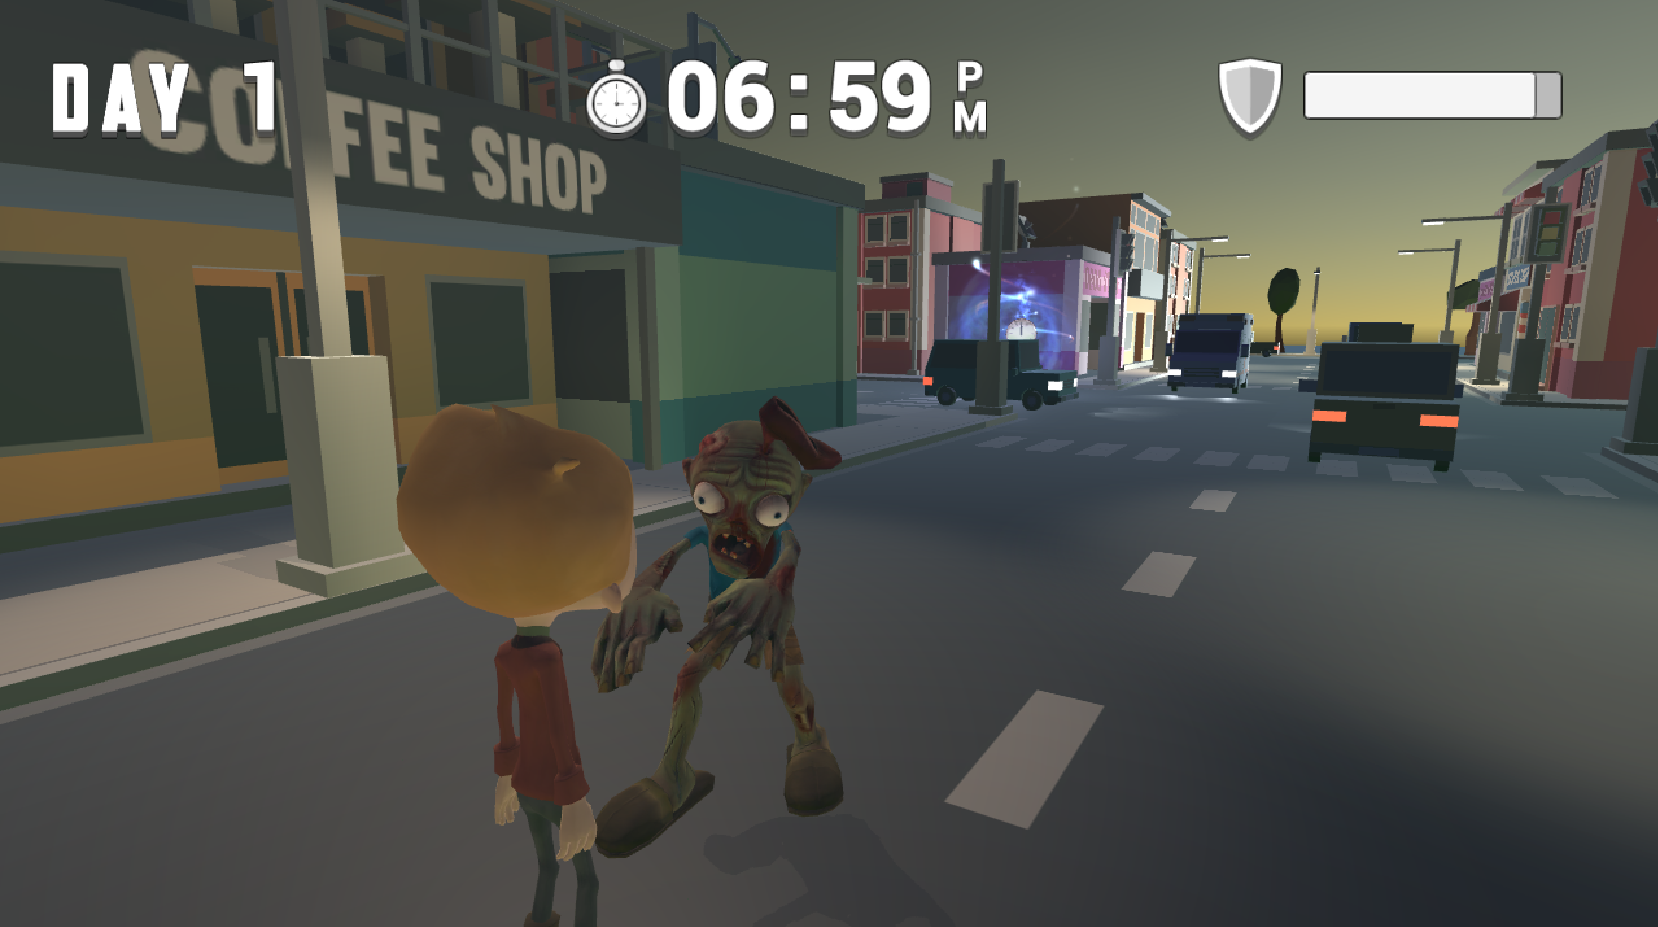 Zombie City - 3D Platforms Game